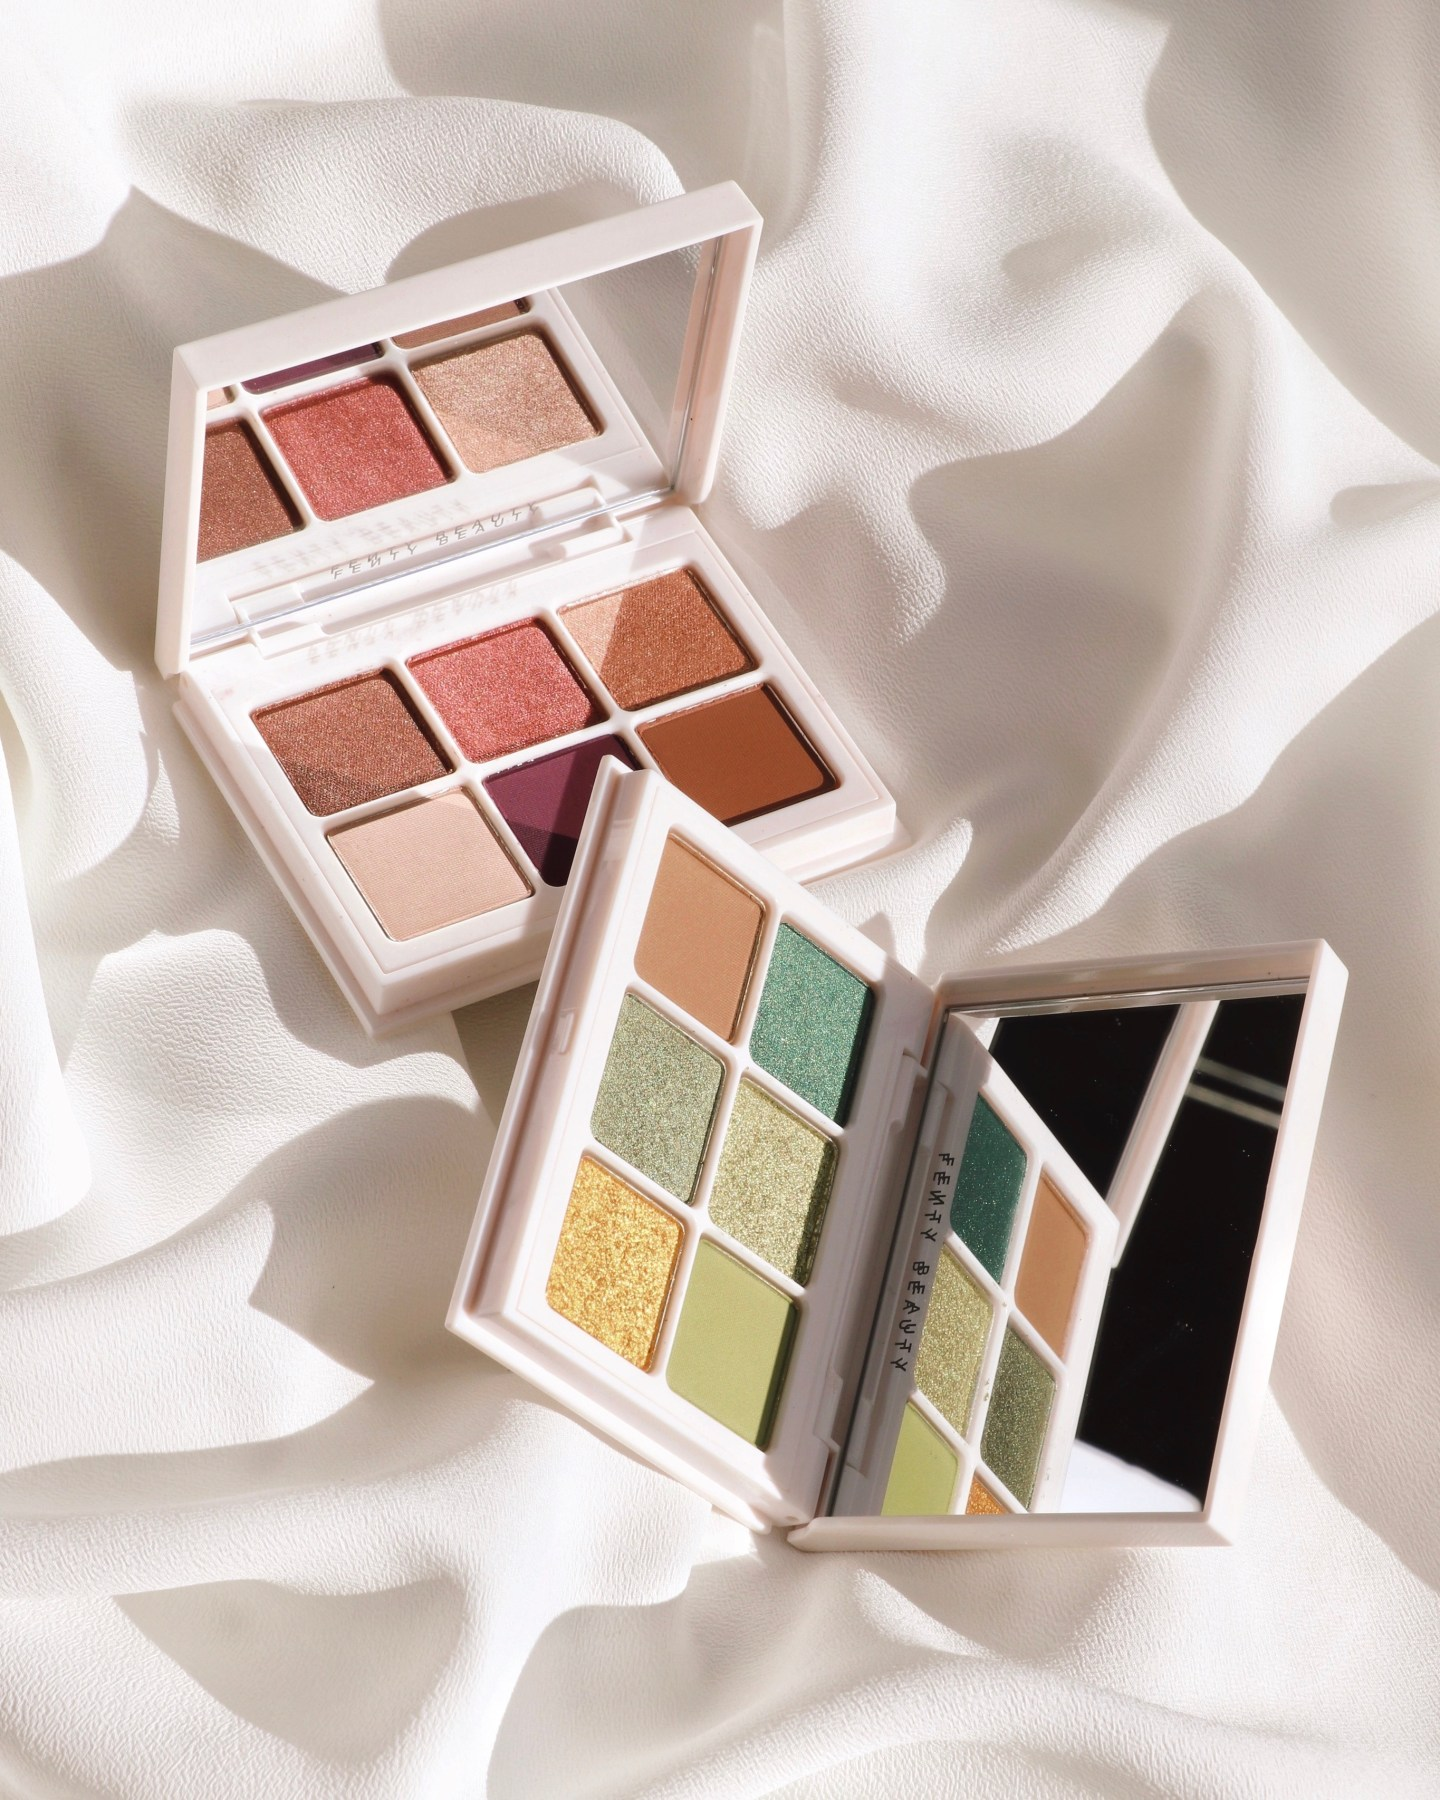 Fenty Beauty NEW SNAP SHADOWS MIX & MATCH EYESHADOW PALETTE